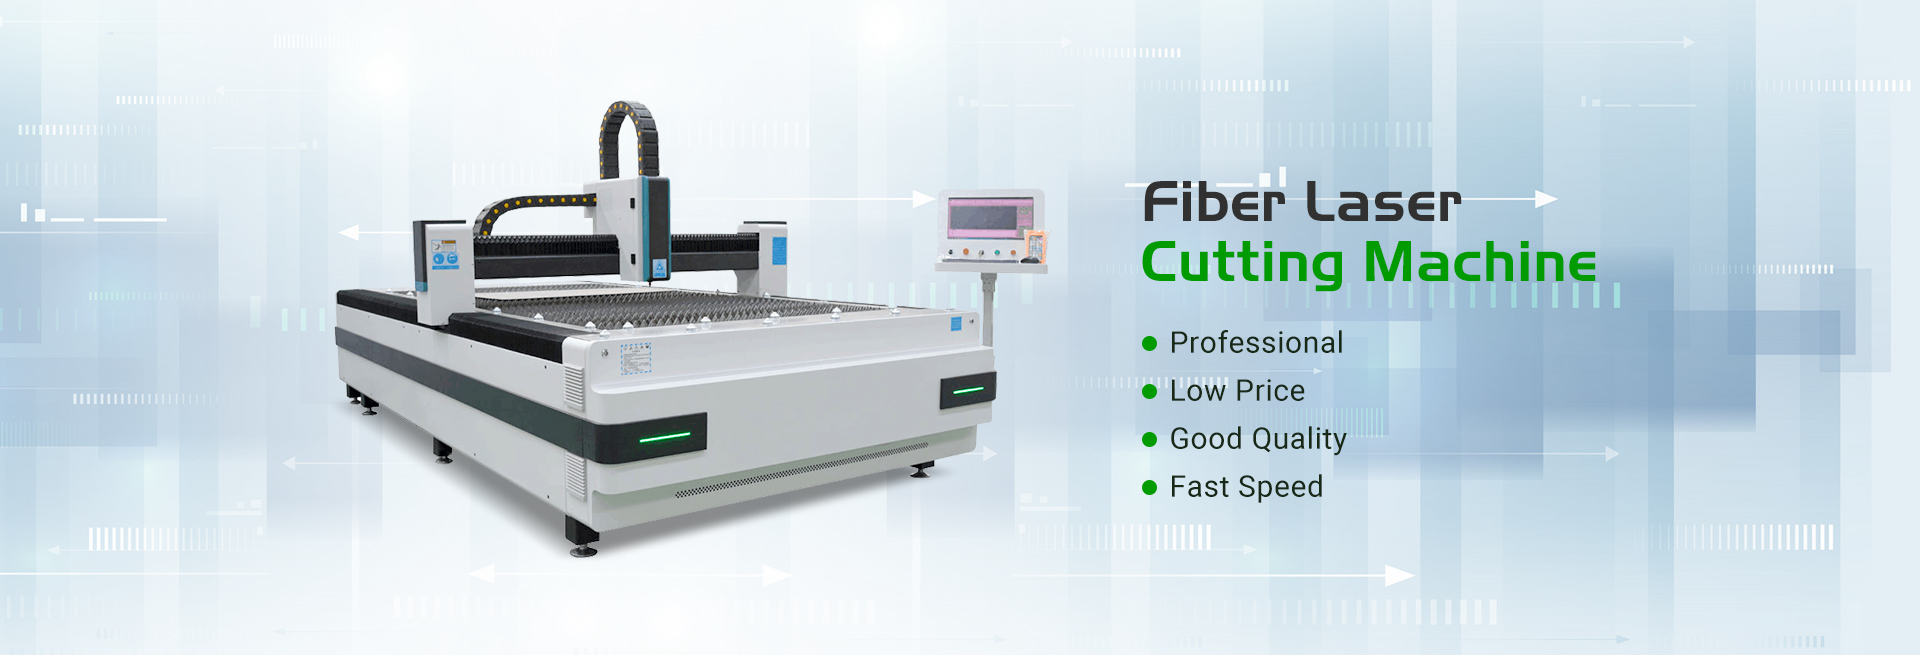 Serat Laser Cutting Machine